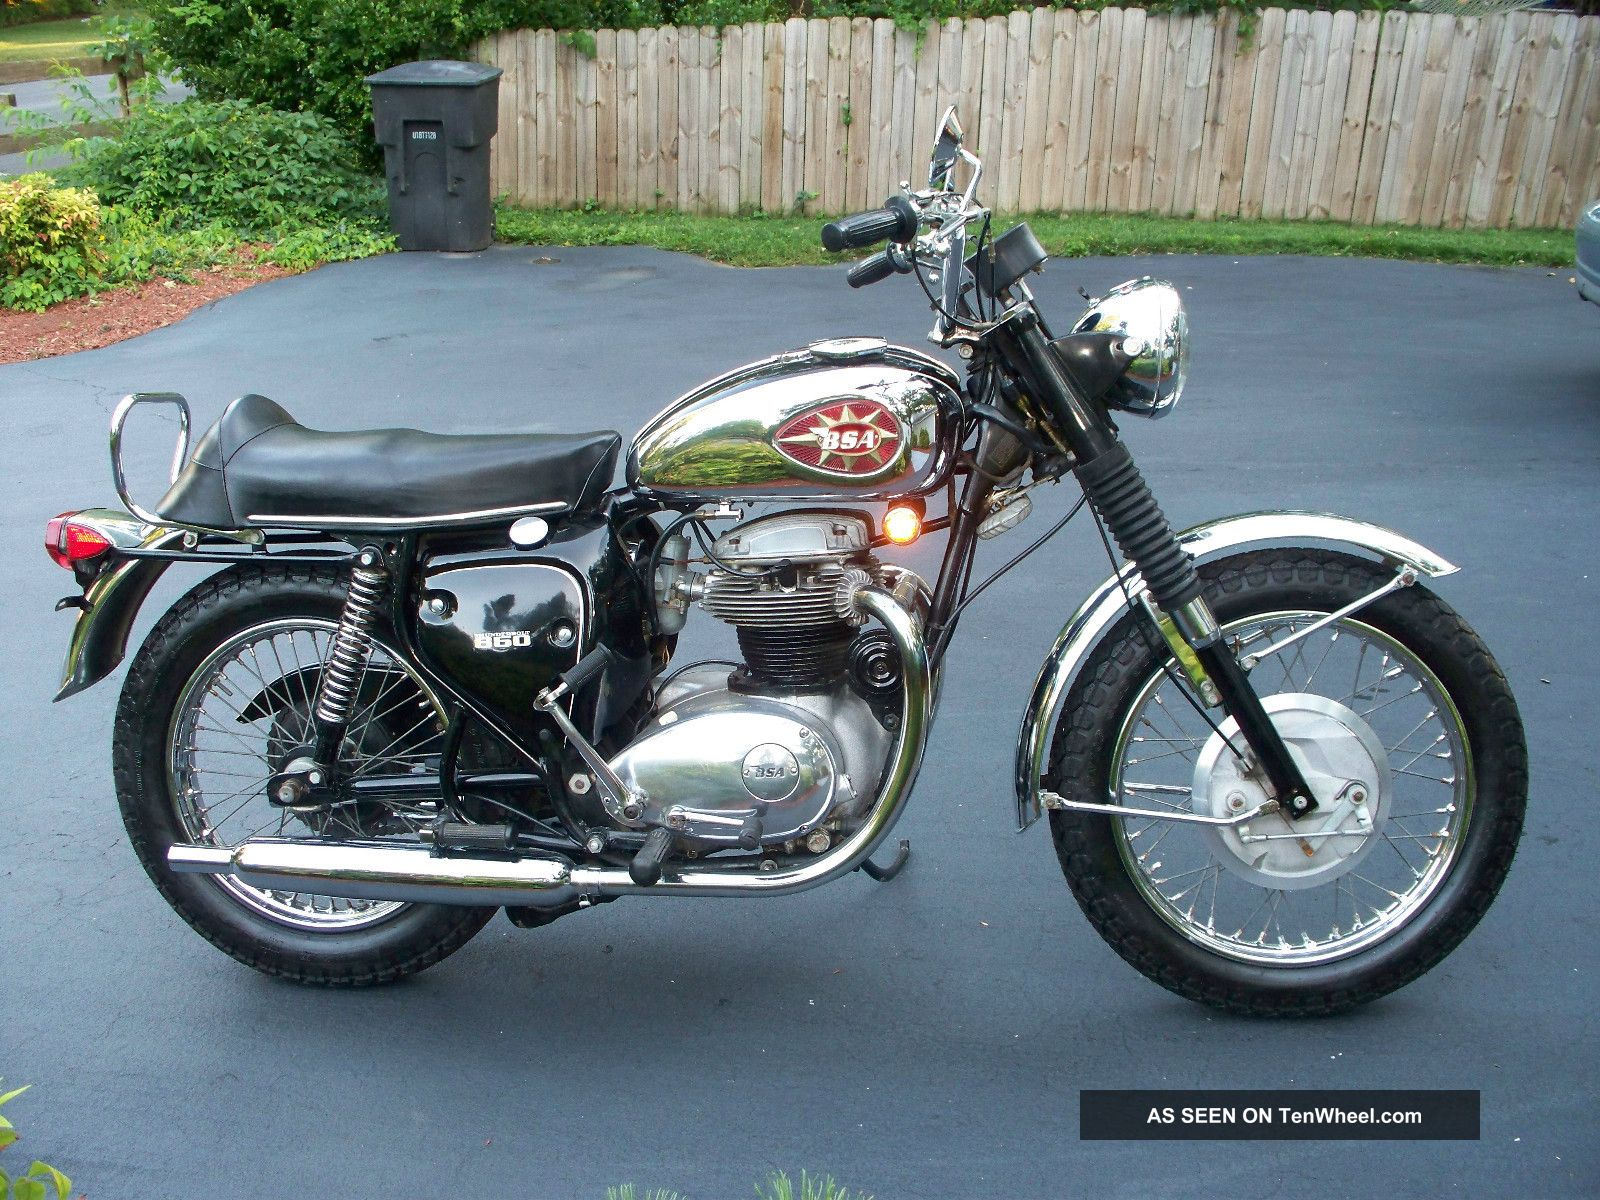 1969 Bsa Thunderbolt Outstanding Condition Very